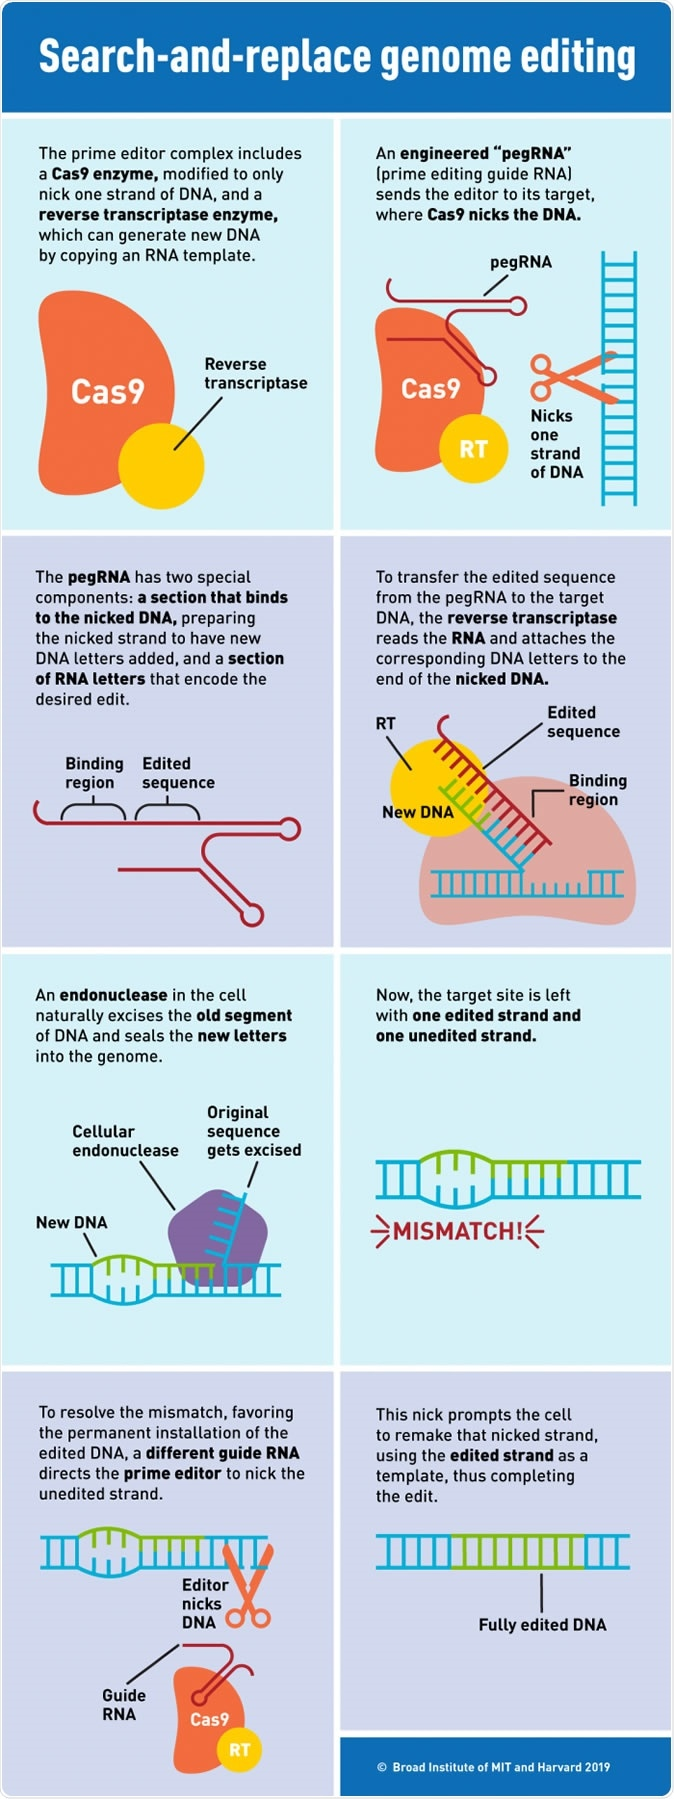 Prime Editing: Search-and-replace genome editing